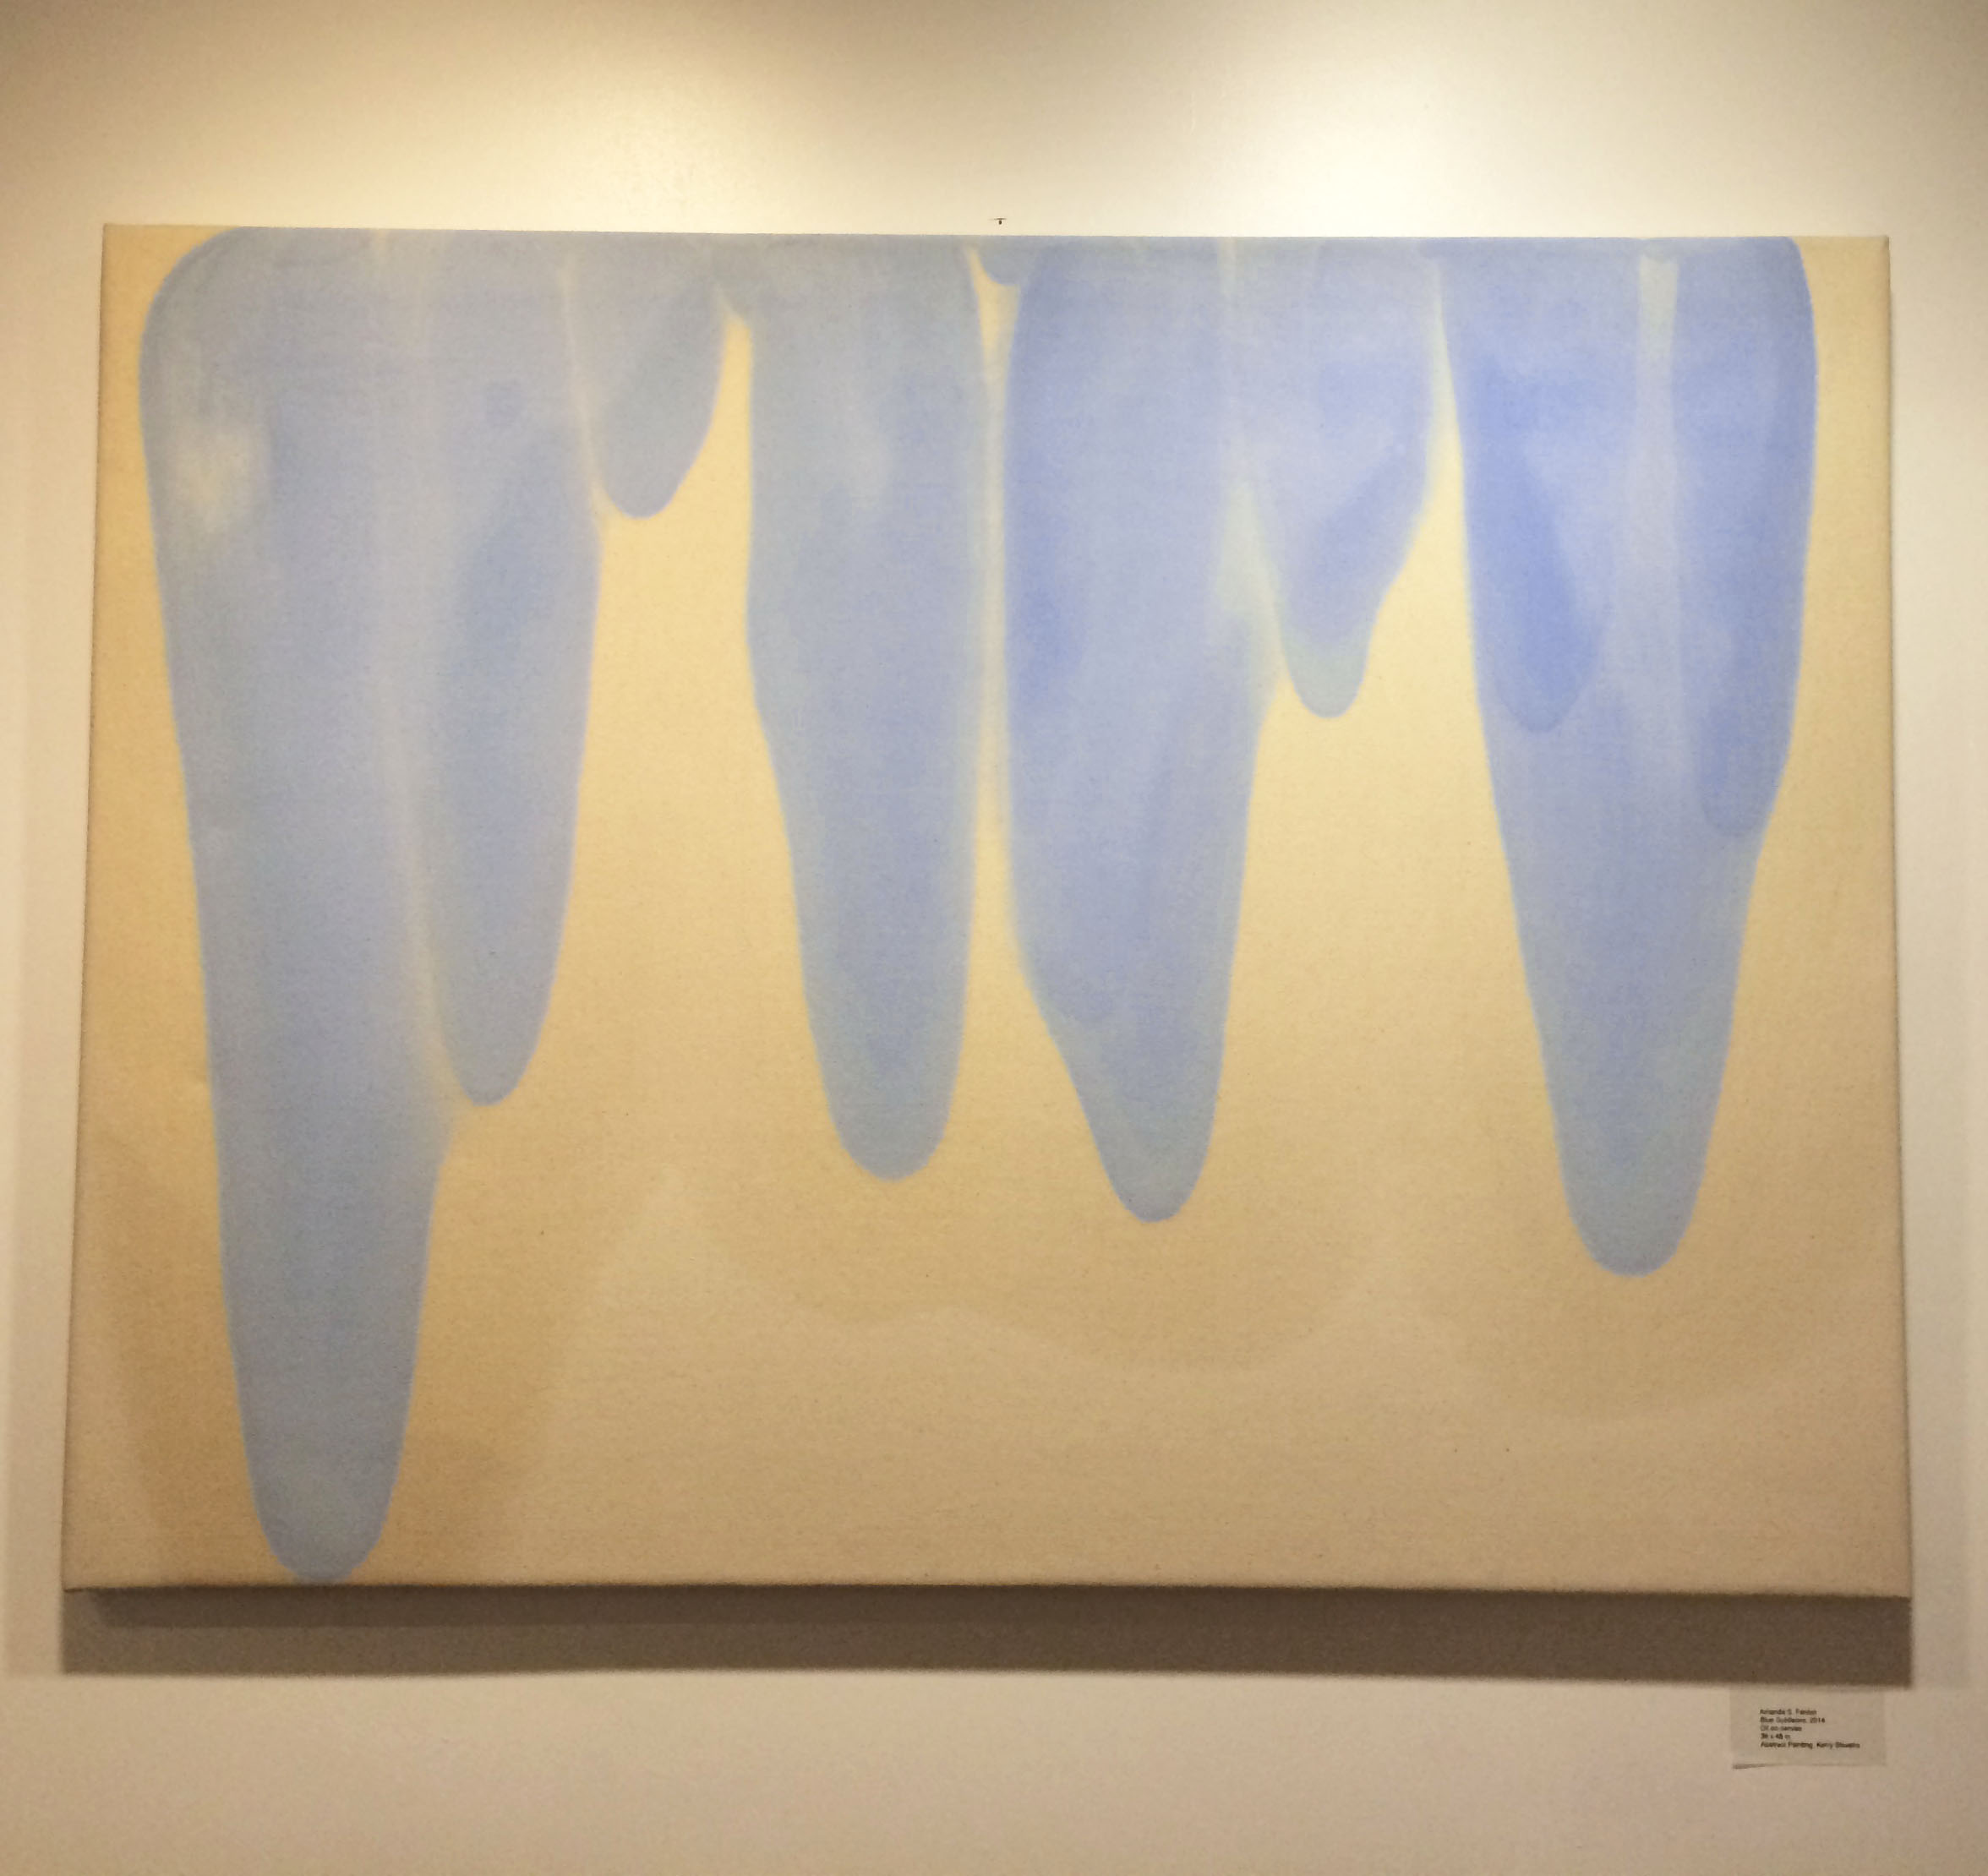 Blue Subleties in Mid-Year Exhibition at National Academy